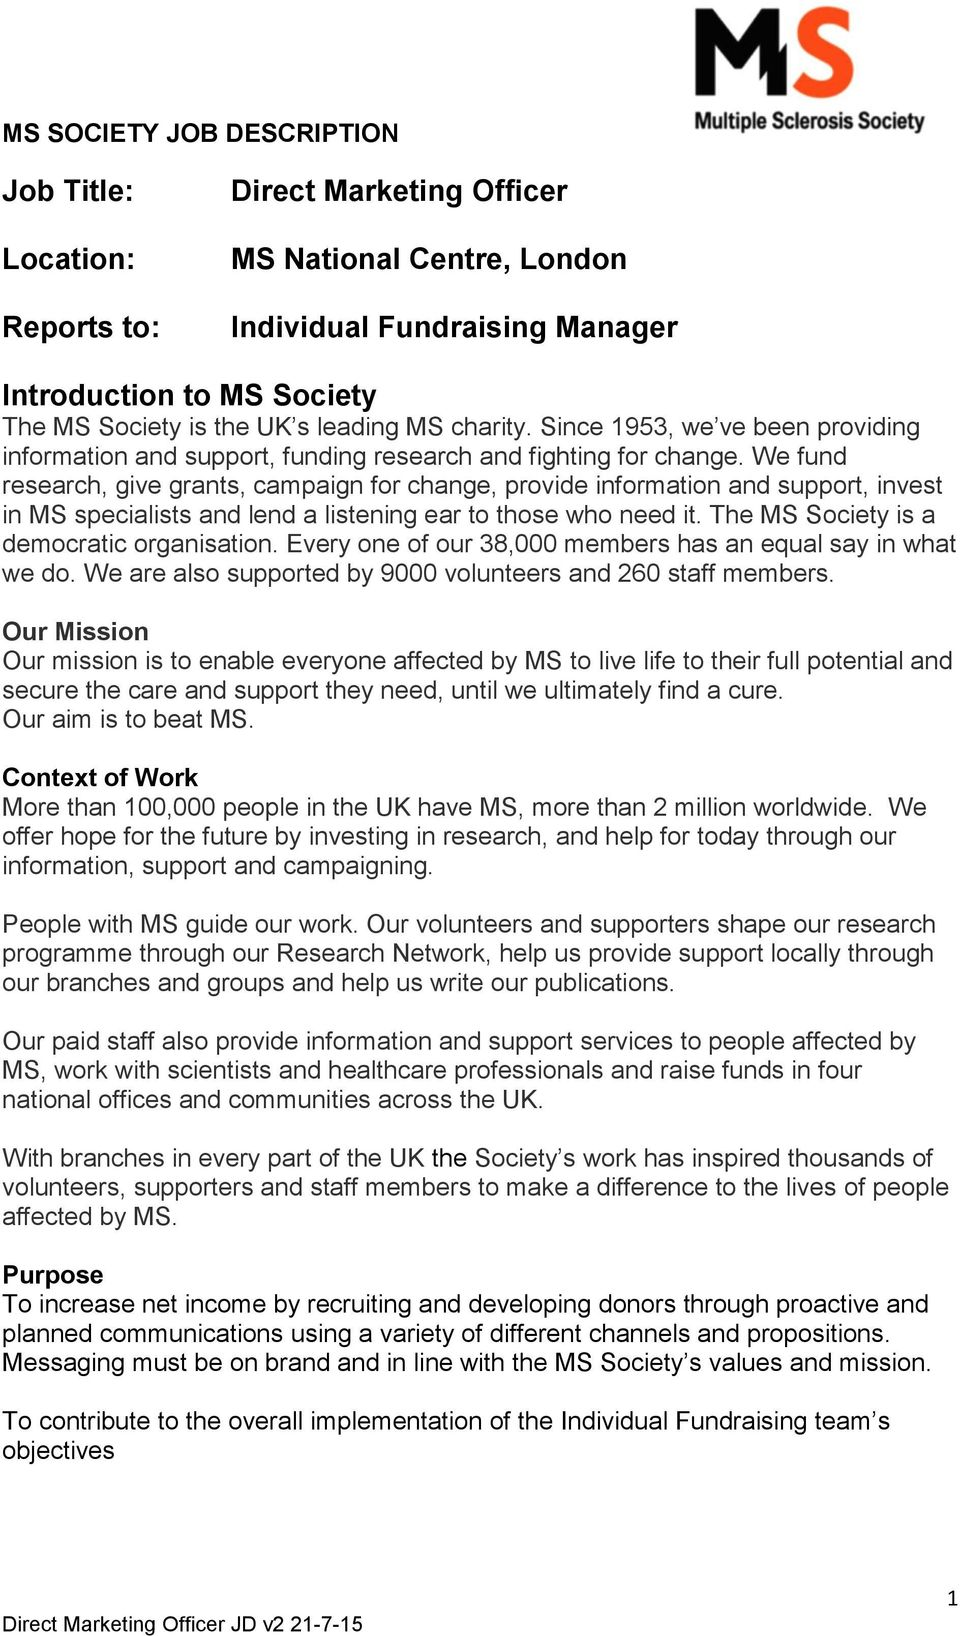 We fund research, give grants, campaign for change, provide information and support, invest in MS specialists and lend a listening ear to those who need it.